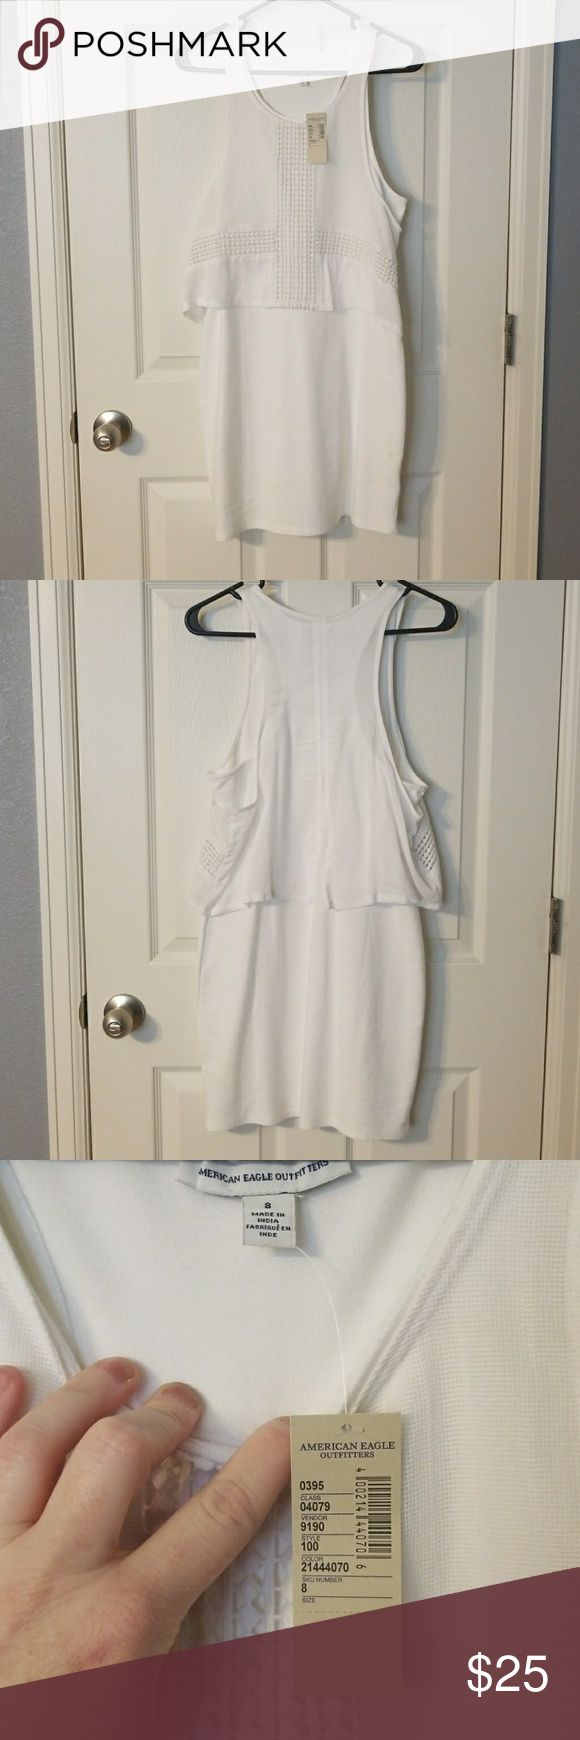 "American Eagle White Dress Never worn tags on.  White Bodycon dress with white cross pattern tank overlay.  All one piece.  Very cute! 27"" from front neckline to bottom. American Eagle Outfitters Dresses Midi"